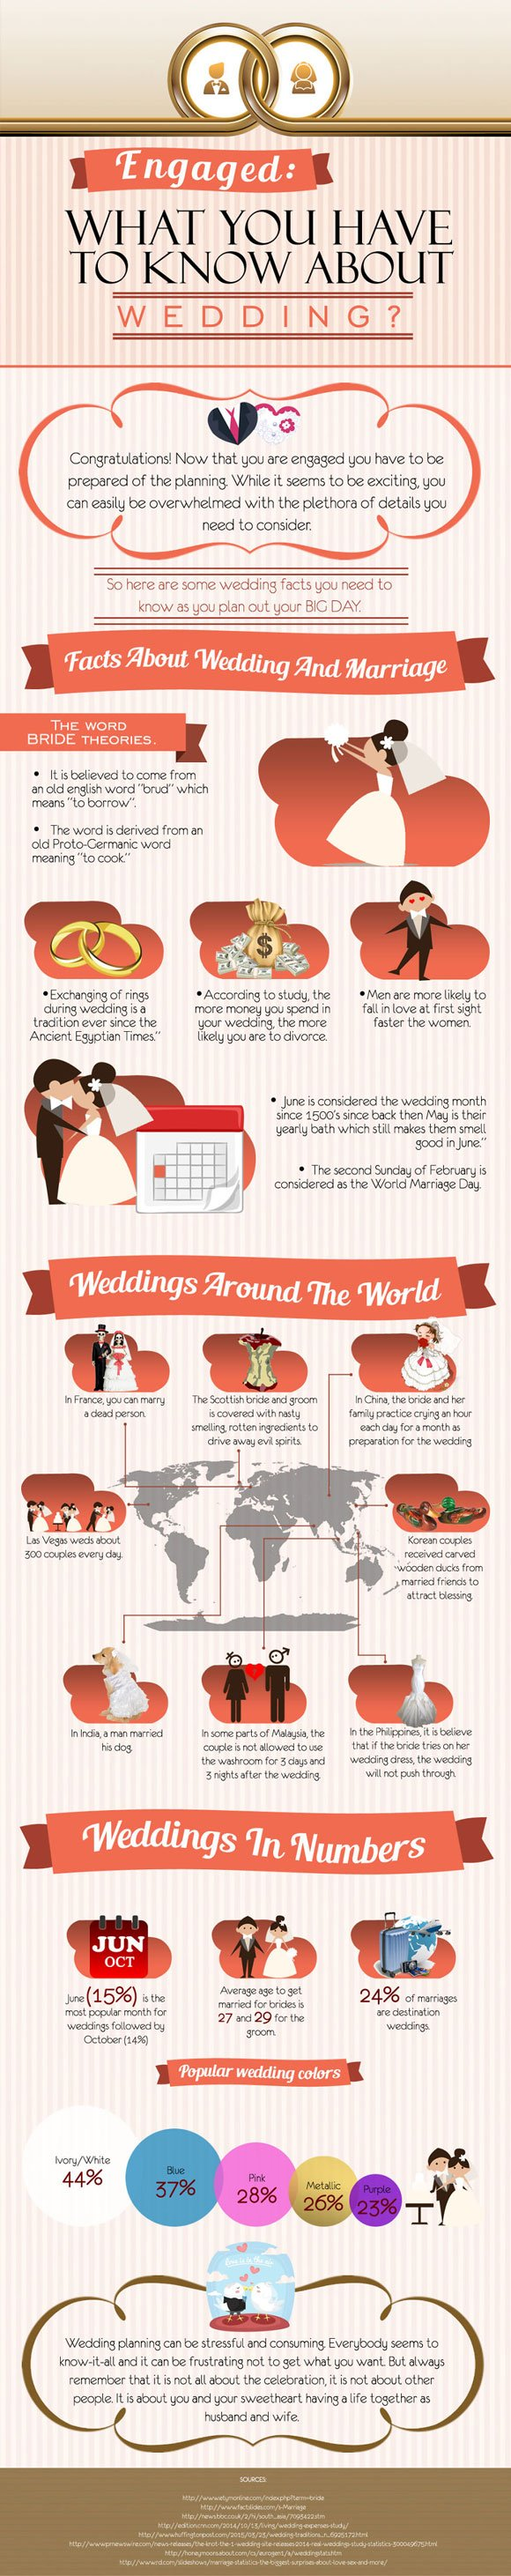 43 Wedding Facts